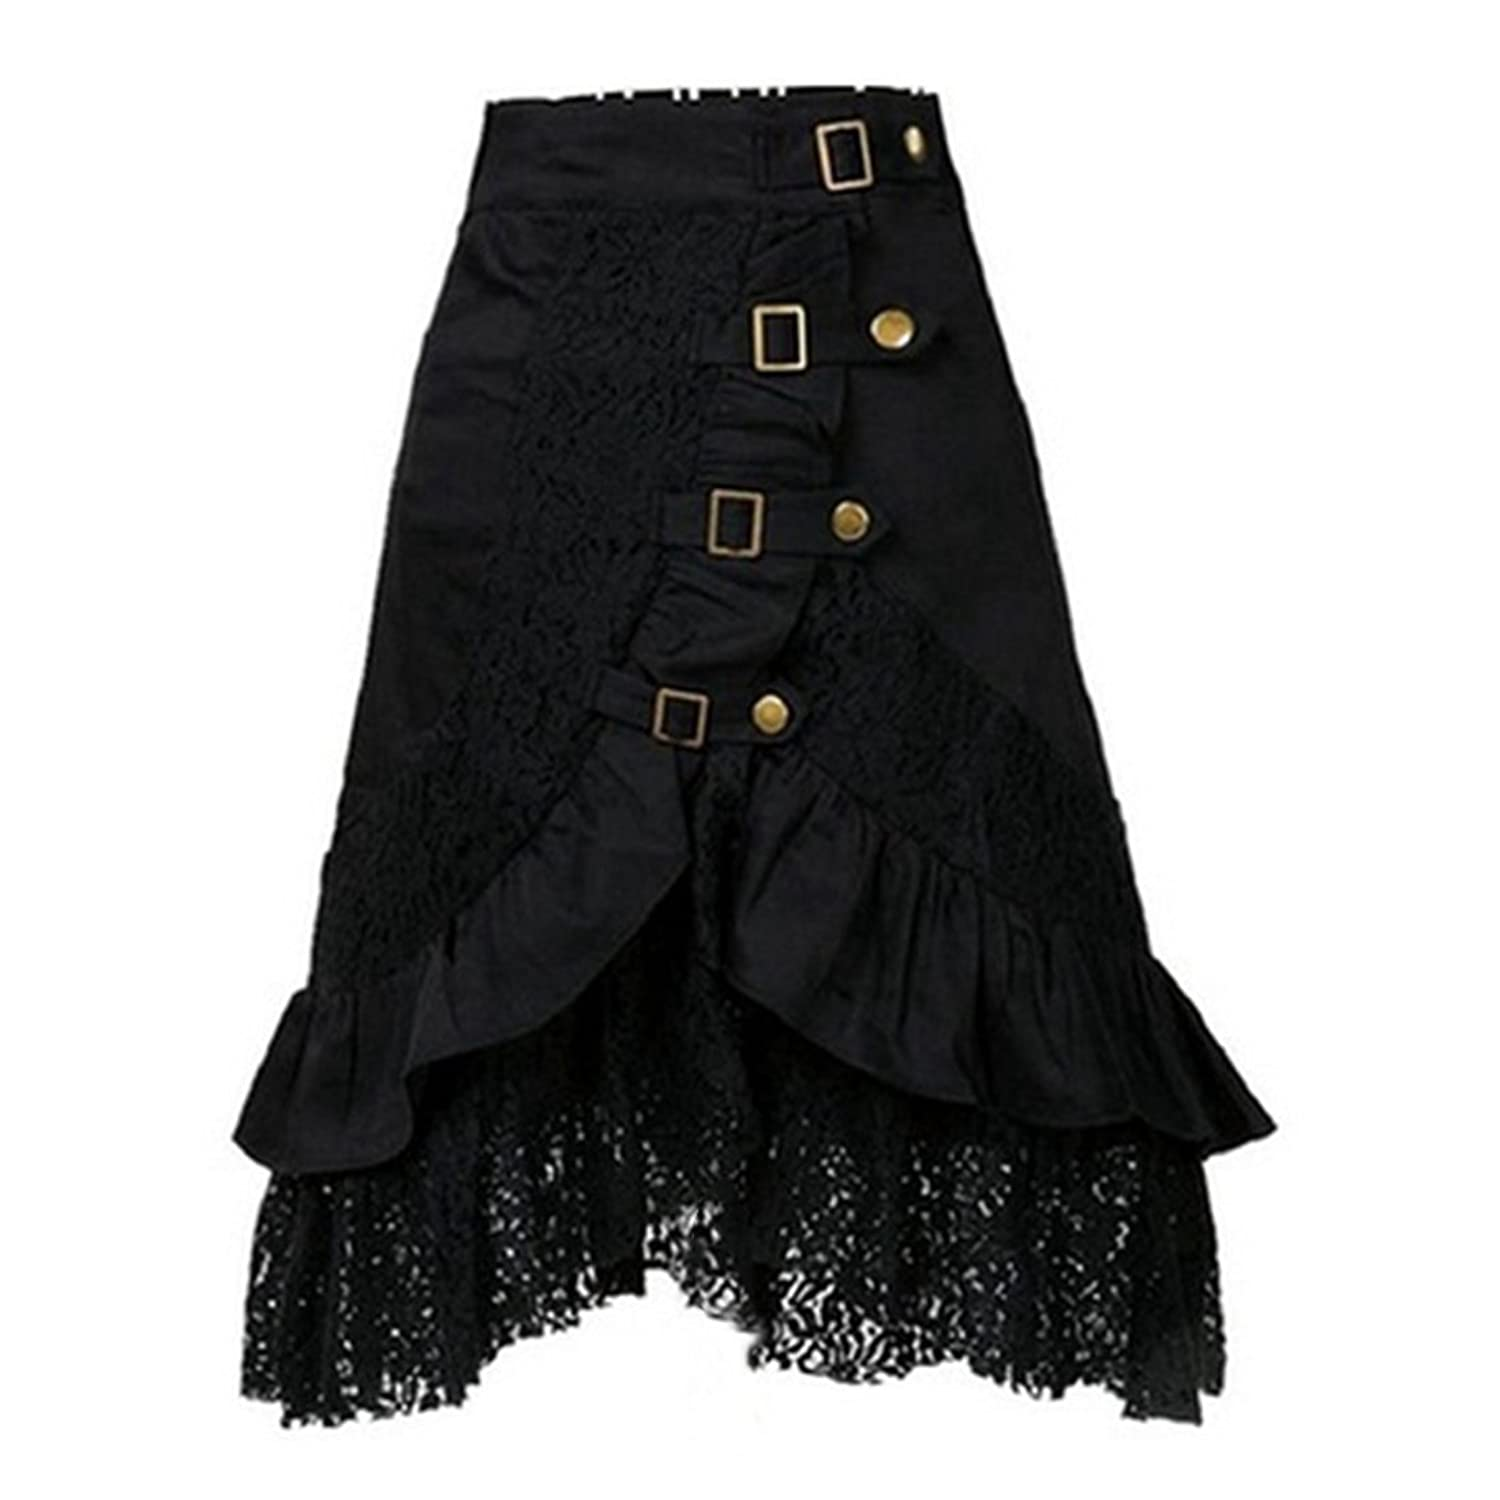 Hinmay Women's Vintage Steampunk Gothic Clothing Cotton Black Lace Party Skirt